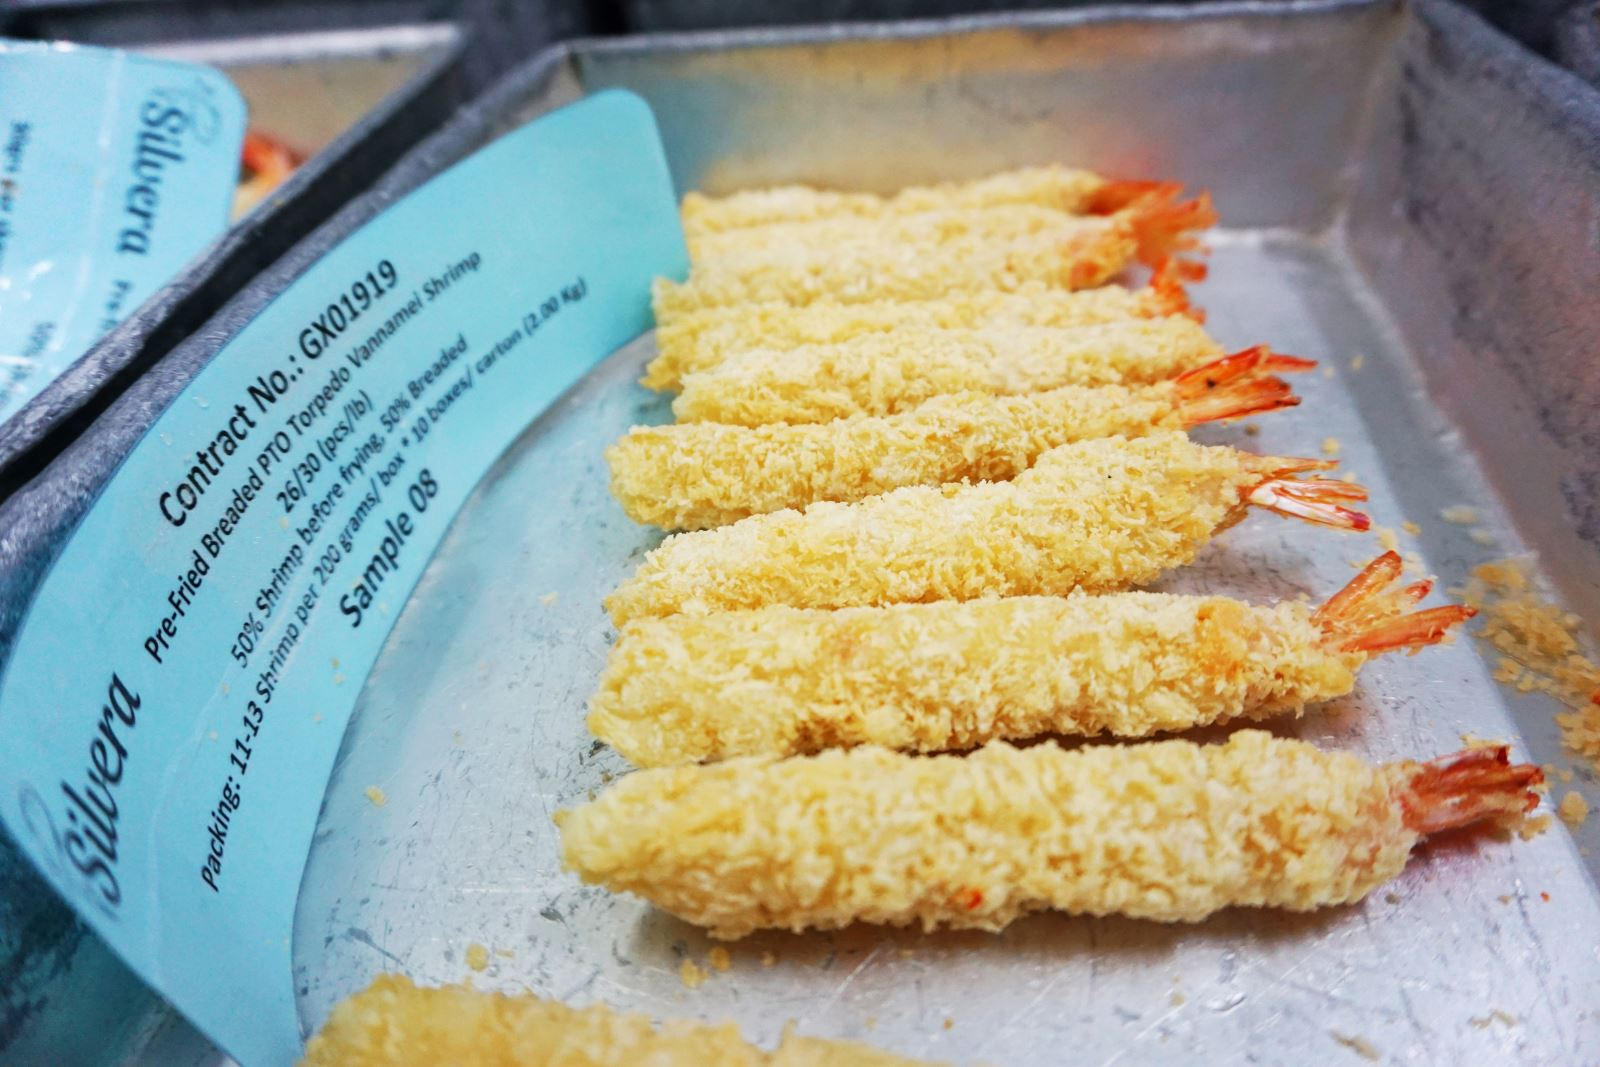 Frozen Pre-fried Breaded Torpedo Vannamei Shrimp